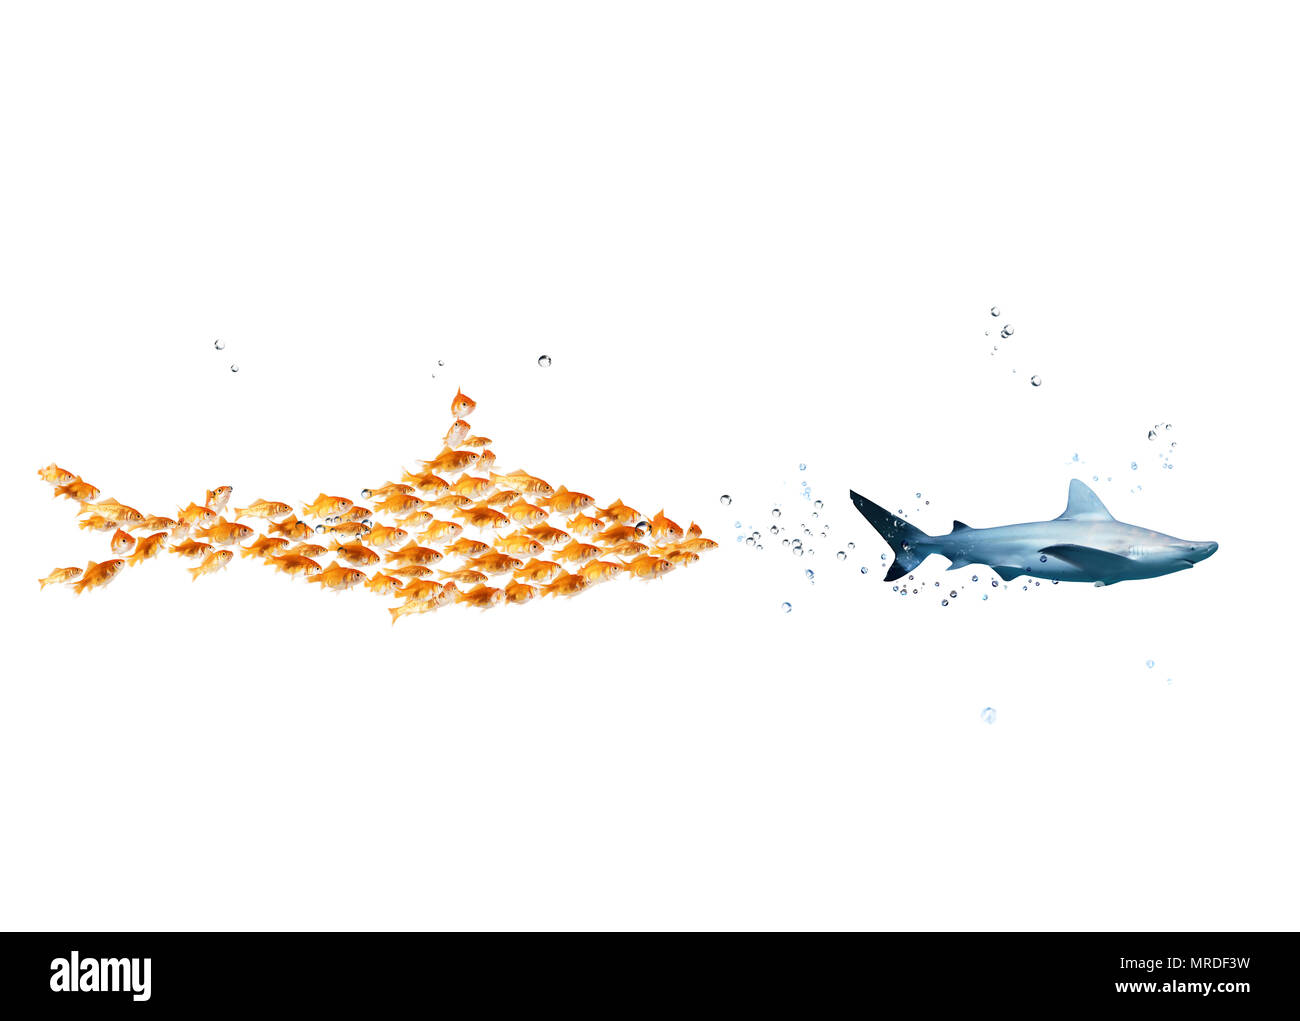 Big shark made of goldfishes attack a real shark. Concept of unity is strength, teamwork and partnership - Stock Image